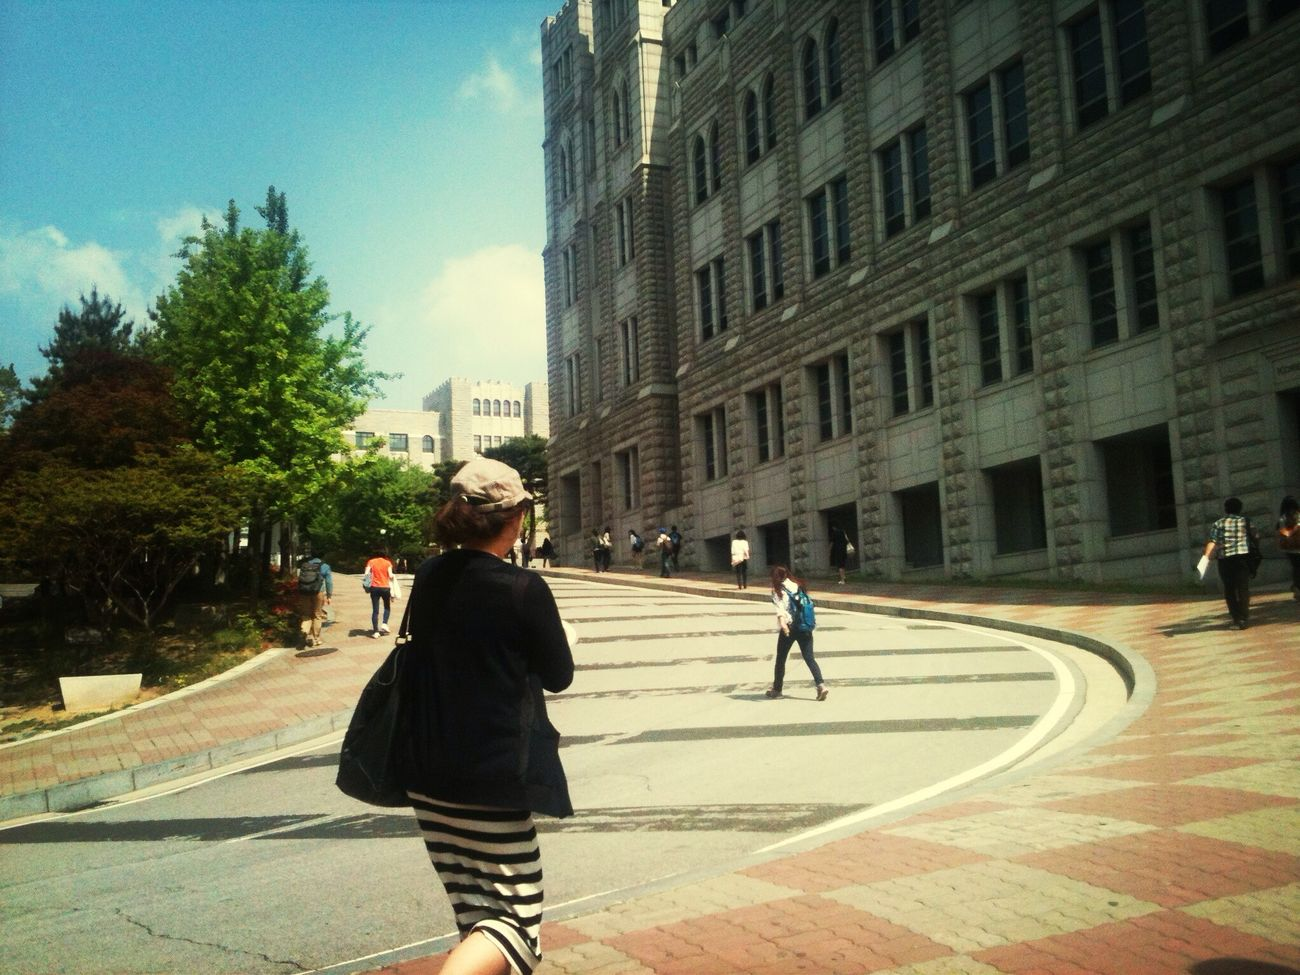 last year at University Taking Photos Hanging Out Go-ryeo University. High-level school. When I visited as a field-trip of school